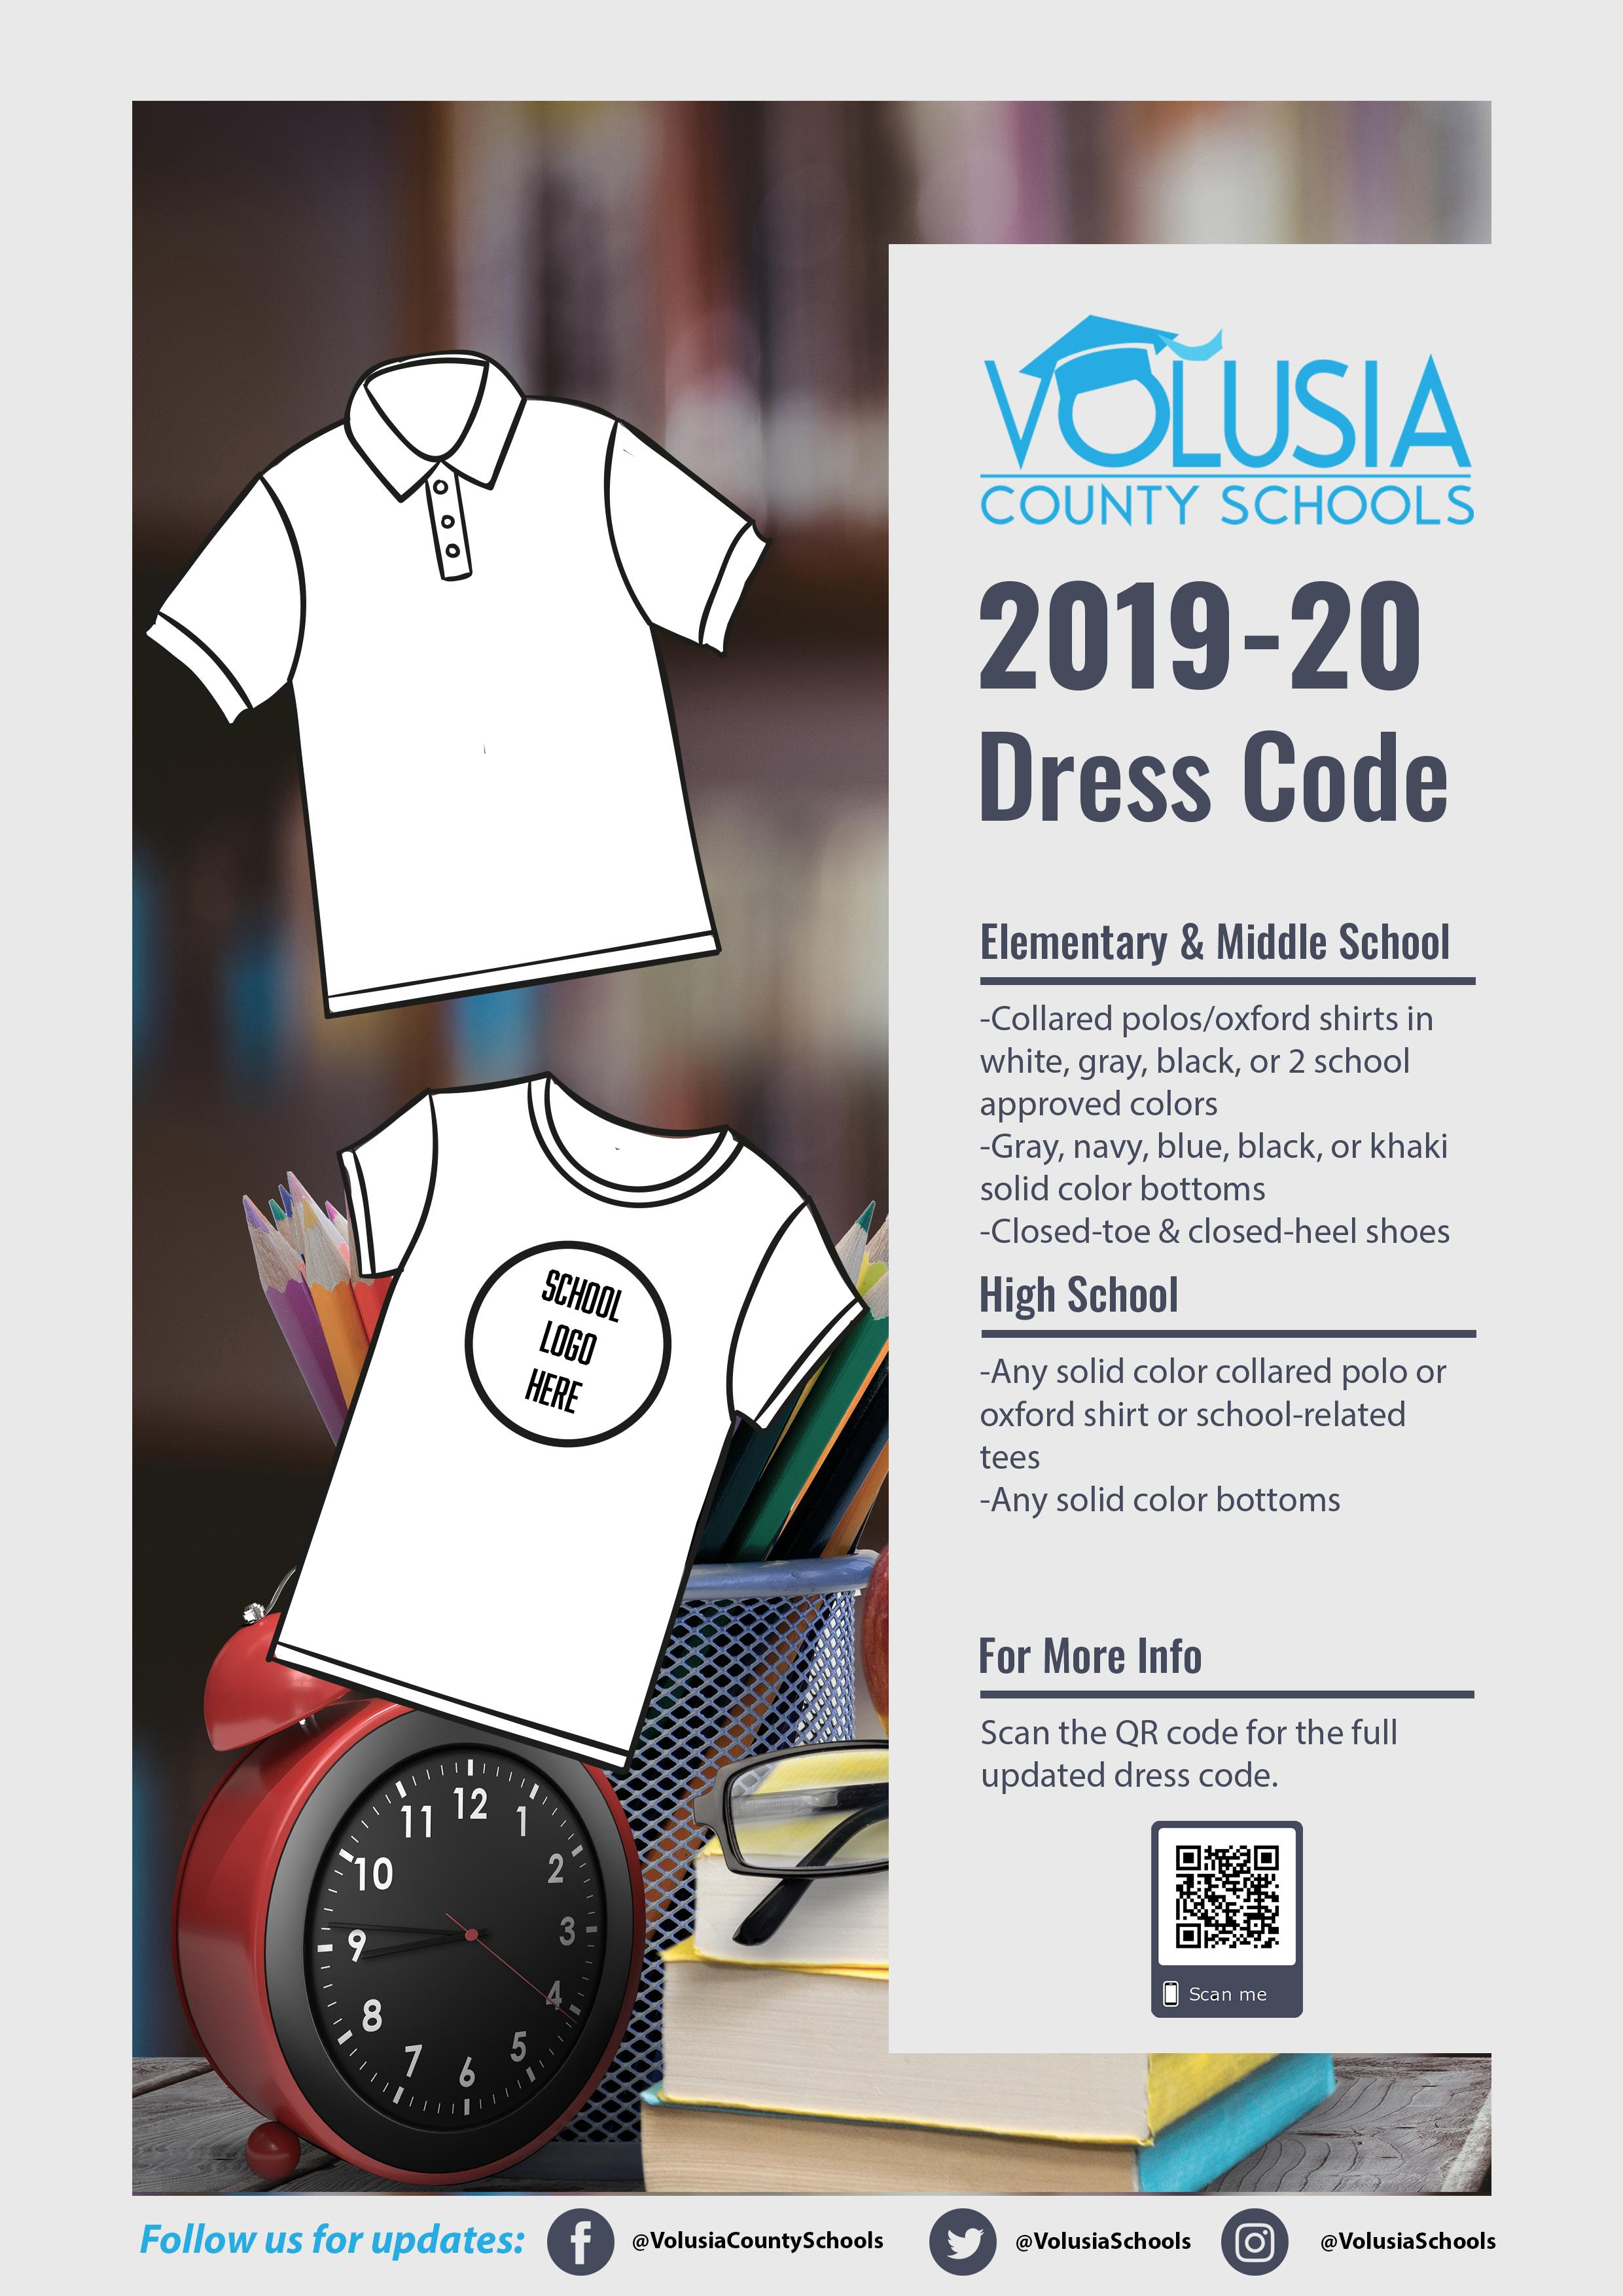 Flyer with VCS 2019-20 dress code